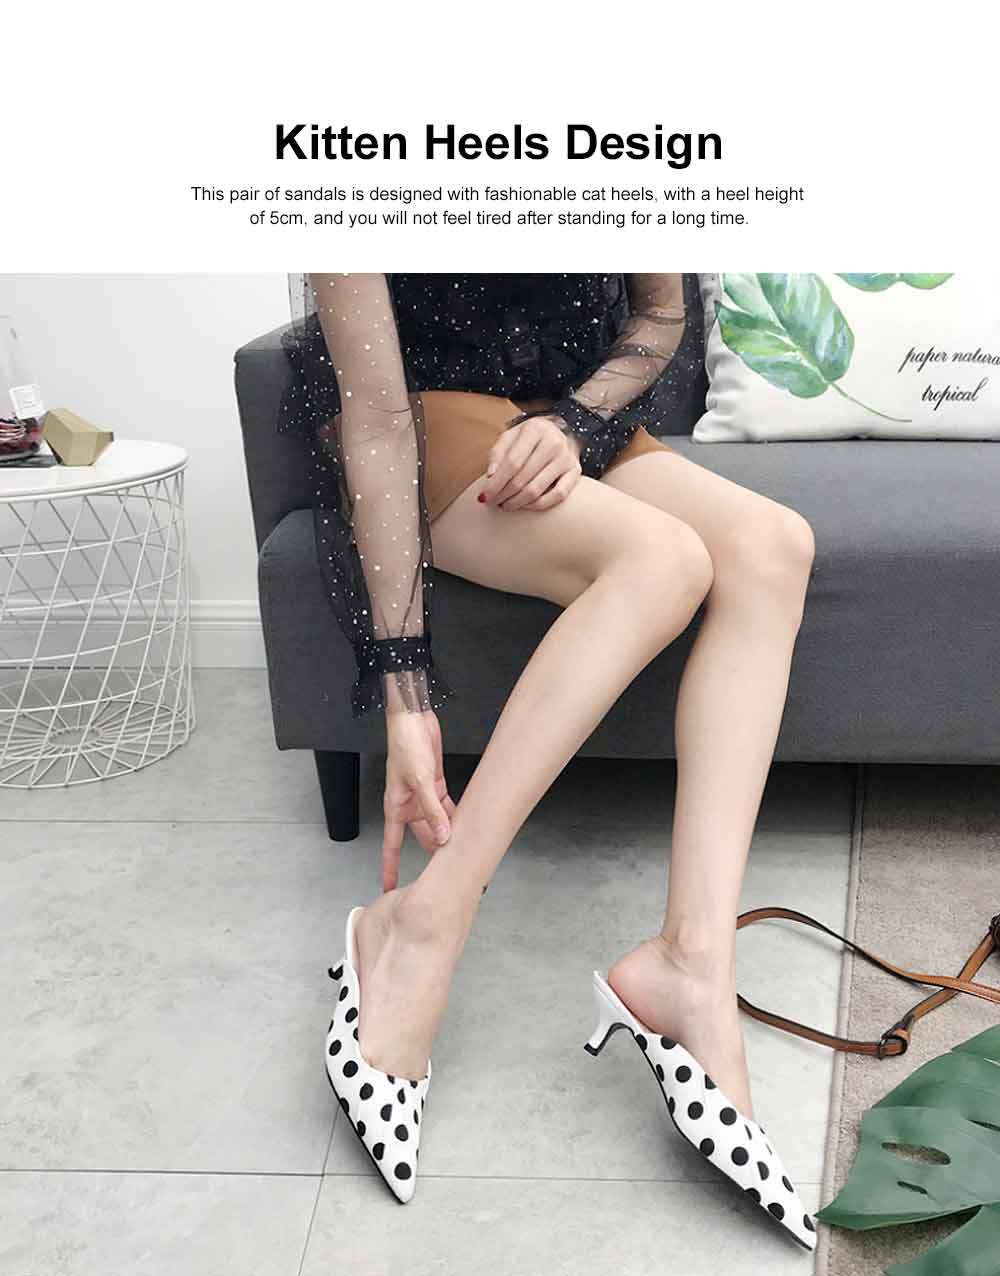 2019 New High Heel Sandals for Women Fashion Pleated Dots Sexy Kitten Heels Tip Binding Slipper Pointed Shoes 1